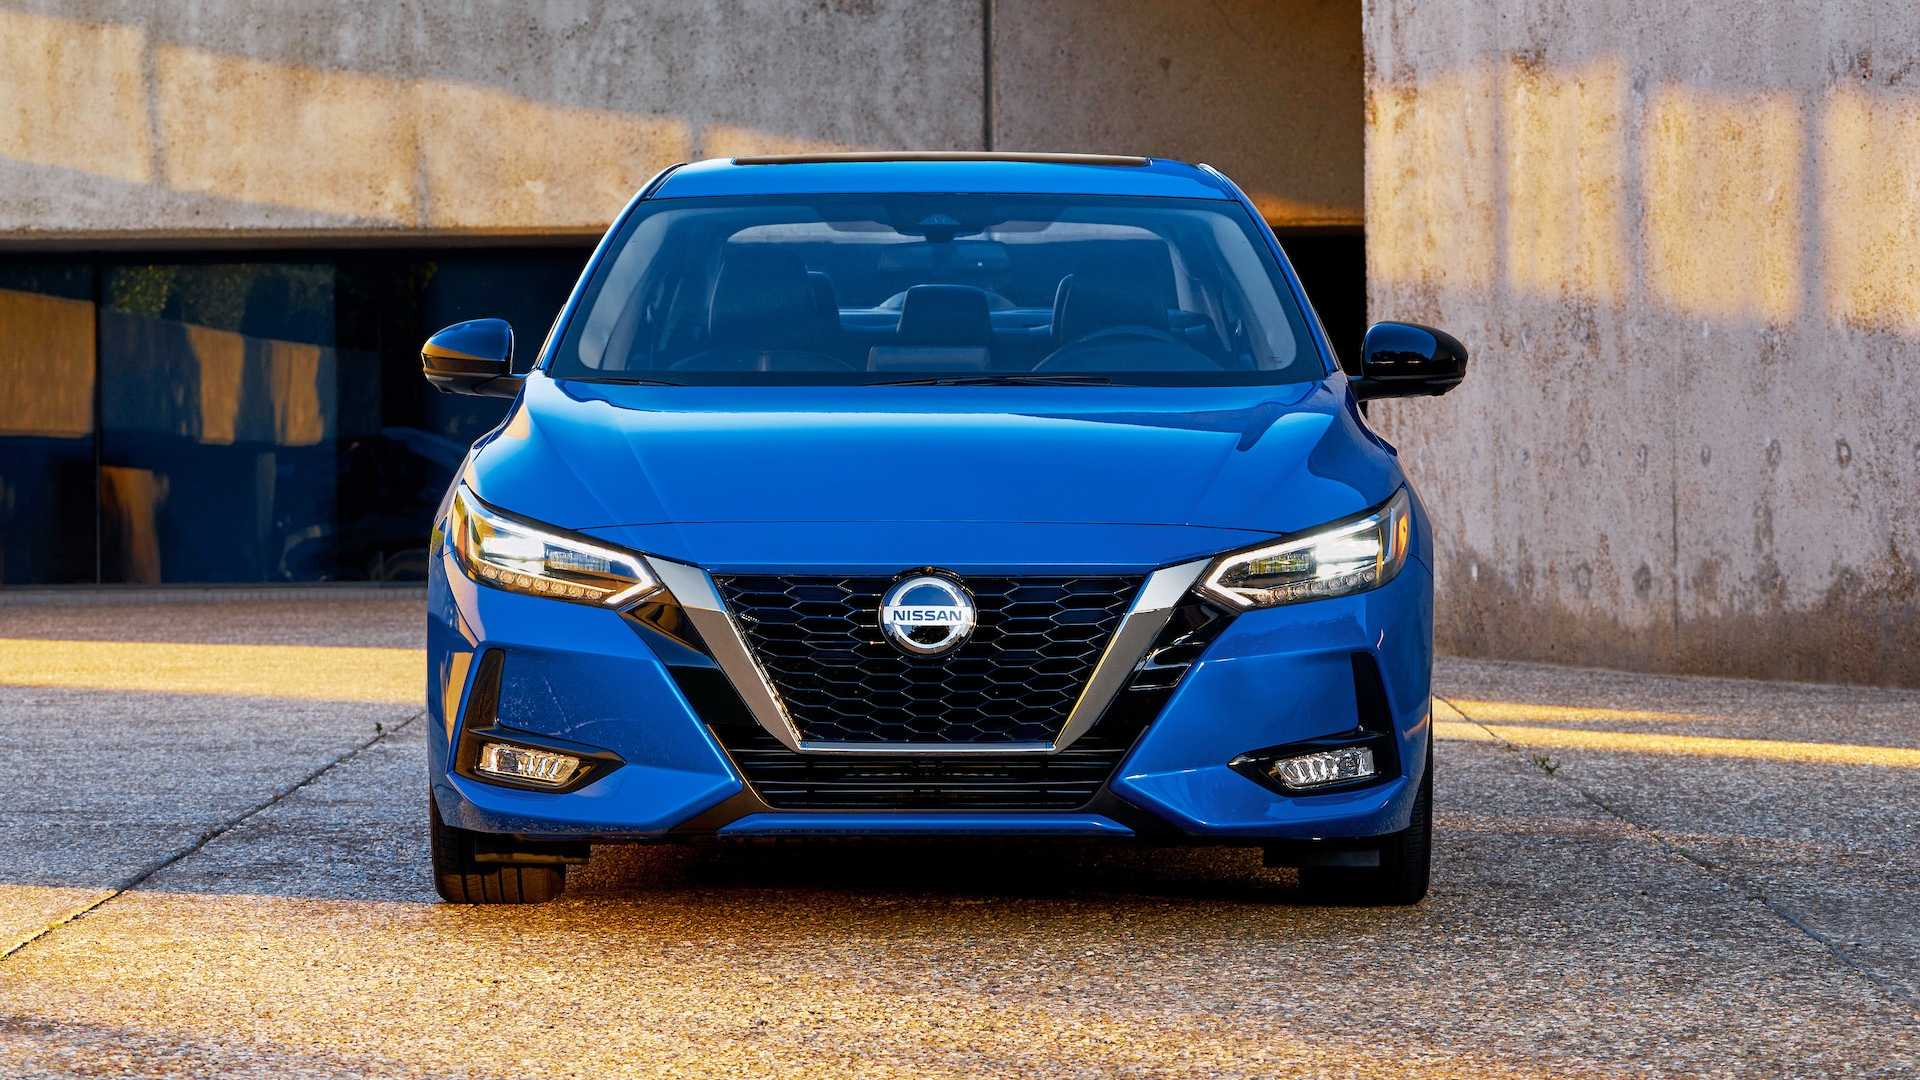 2020 Nissan Sentra: Review, Specs and Price in UAE